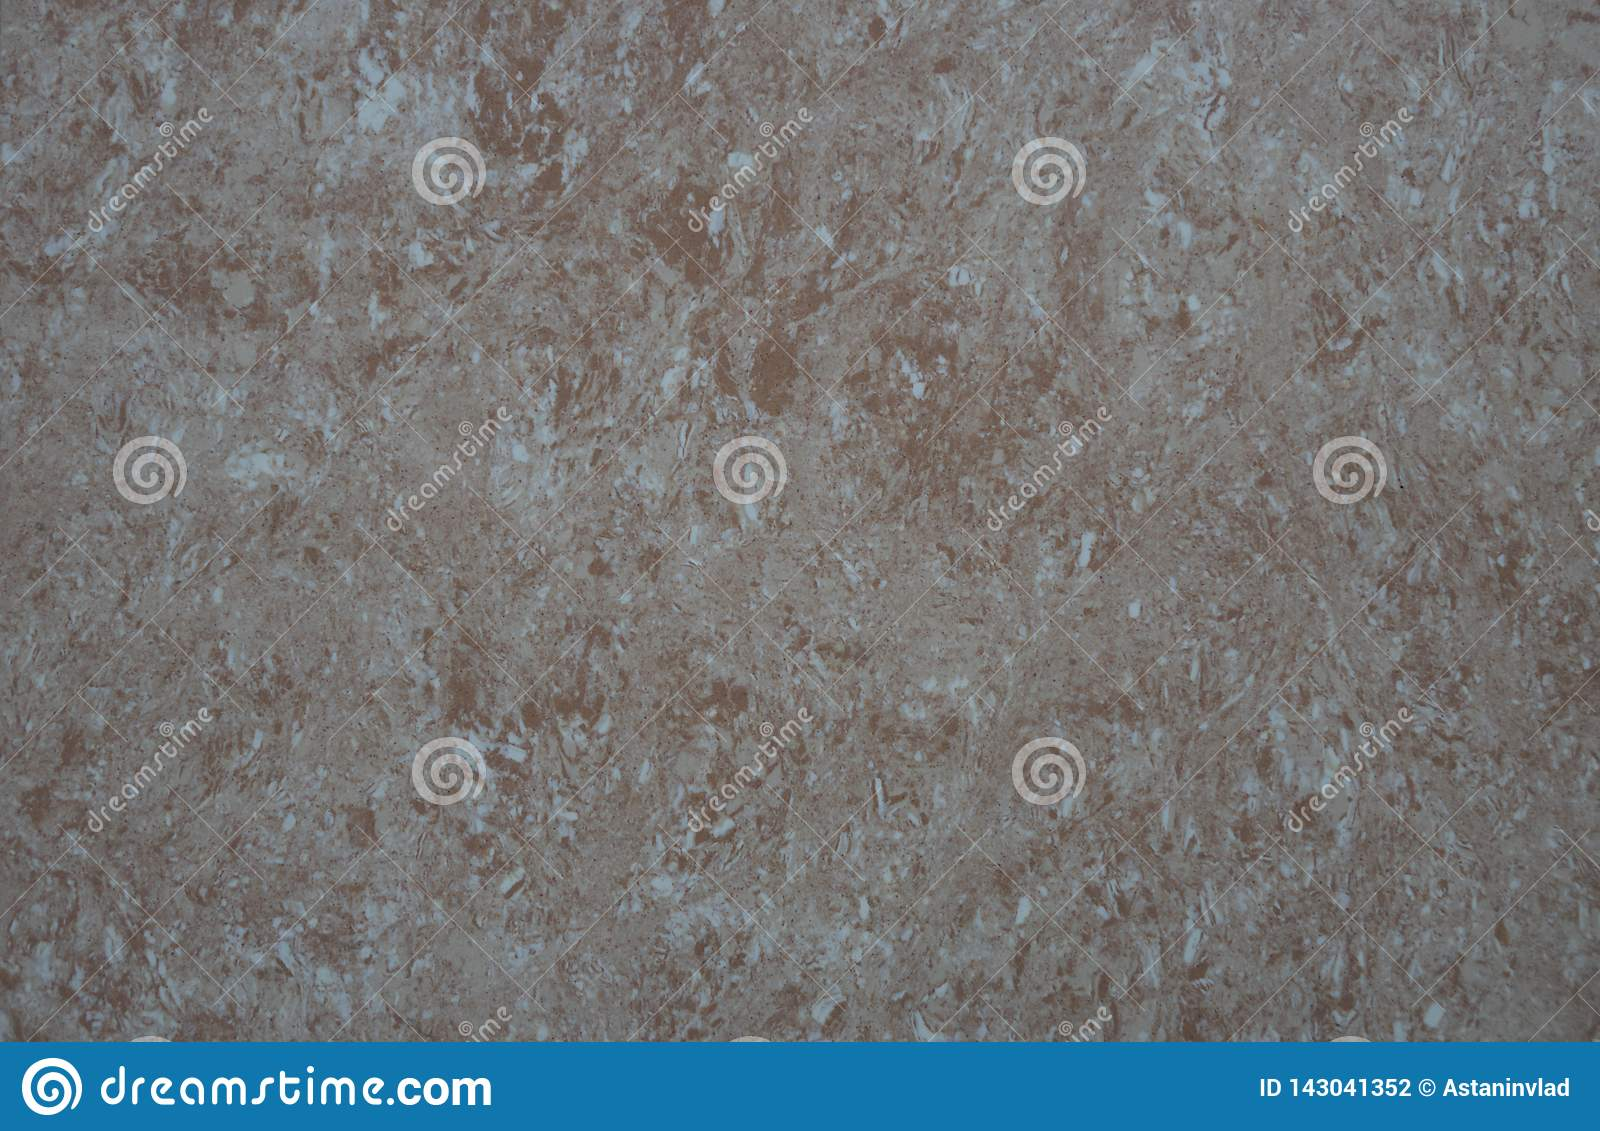 Pink marble texture background, abstract marble texture natural patterns for design.